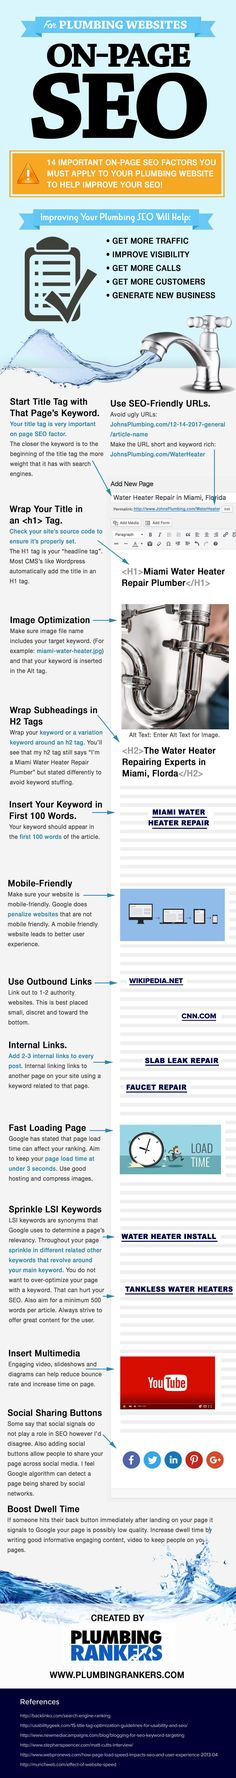 This infographic explains 14 on-page SEO factors for plumbing websites. Correcting these on-page SEO factors can drastically improve your plumbing websites ranking (SEO) in search engines such as Google. #infographics